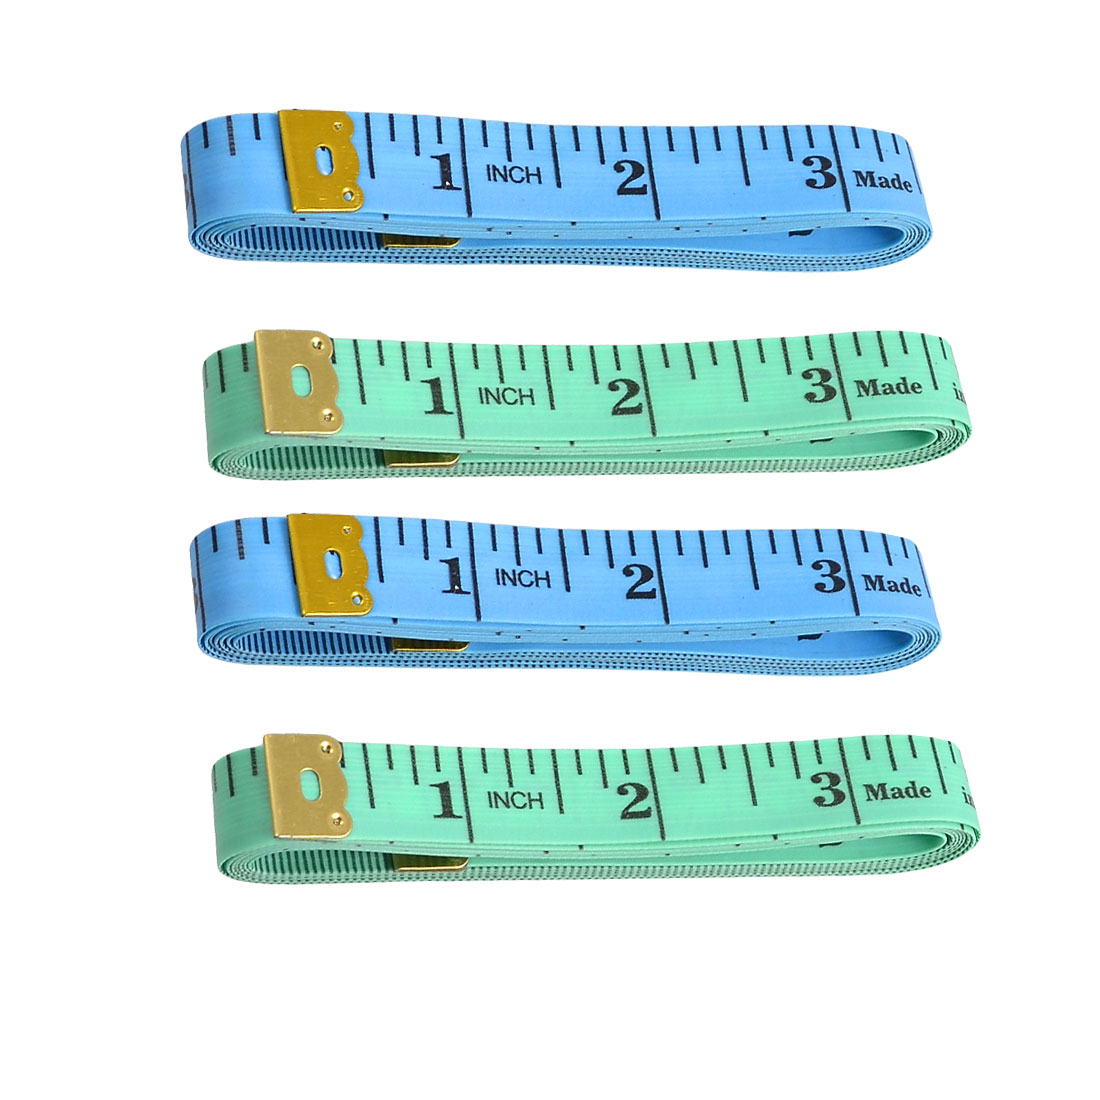 Unique Bargains 60-Inch Inch/Metric Tape Measure Sewing Tailor Cloth Ruler 4 Pcs